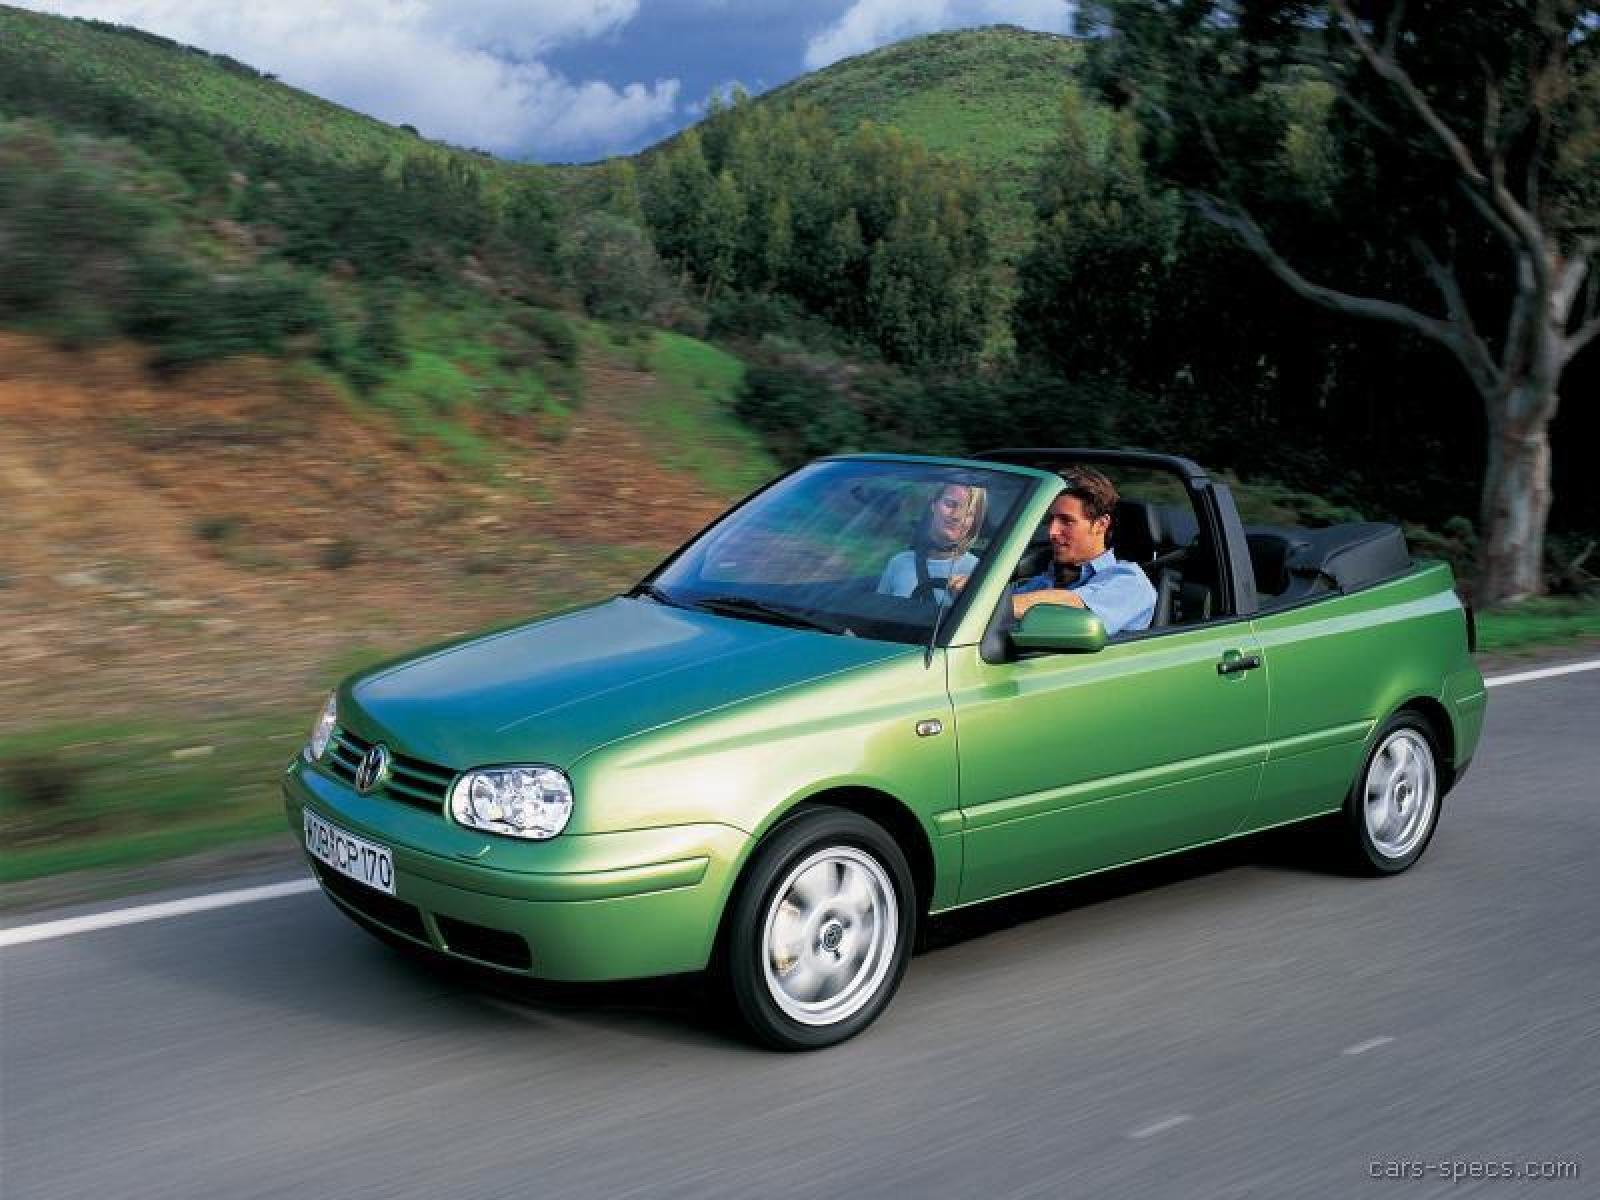 1999 volkswagen cabrio information and photos zombiedrive. Black Bedroom Furniture Sets. Home Design Ideas